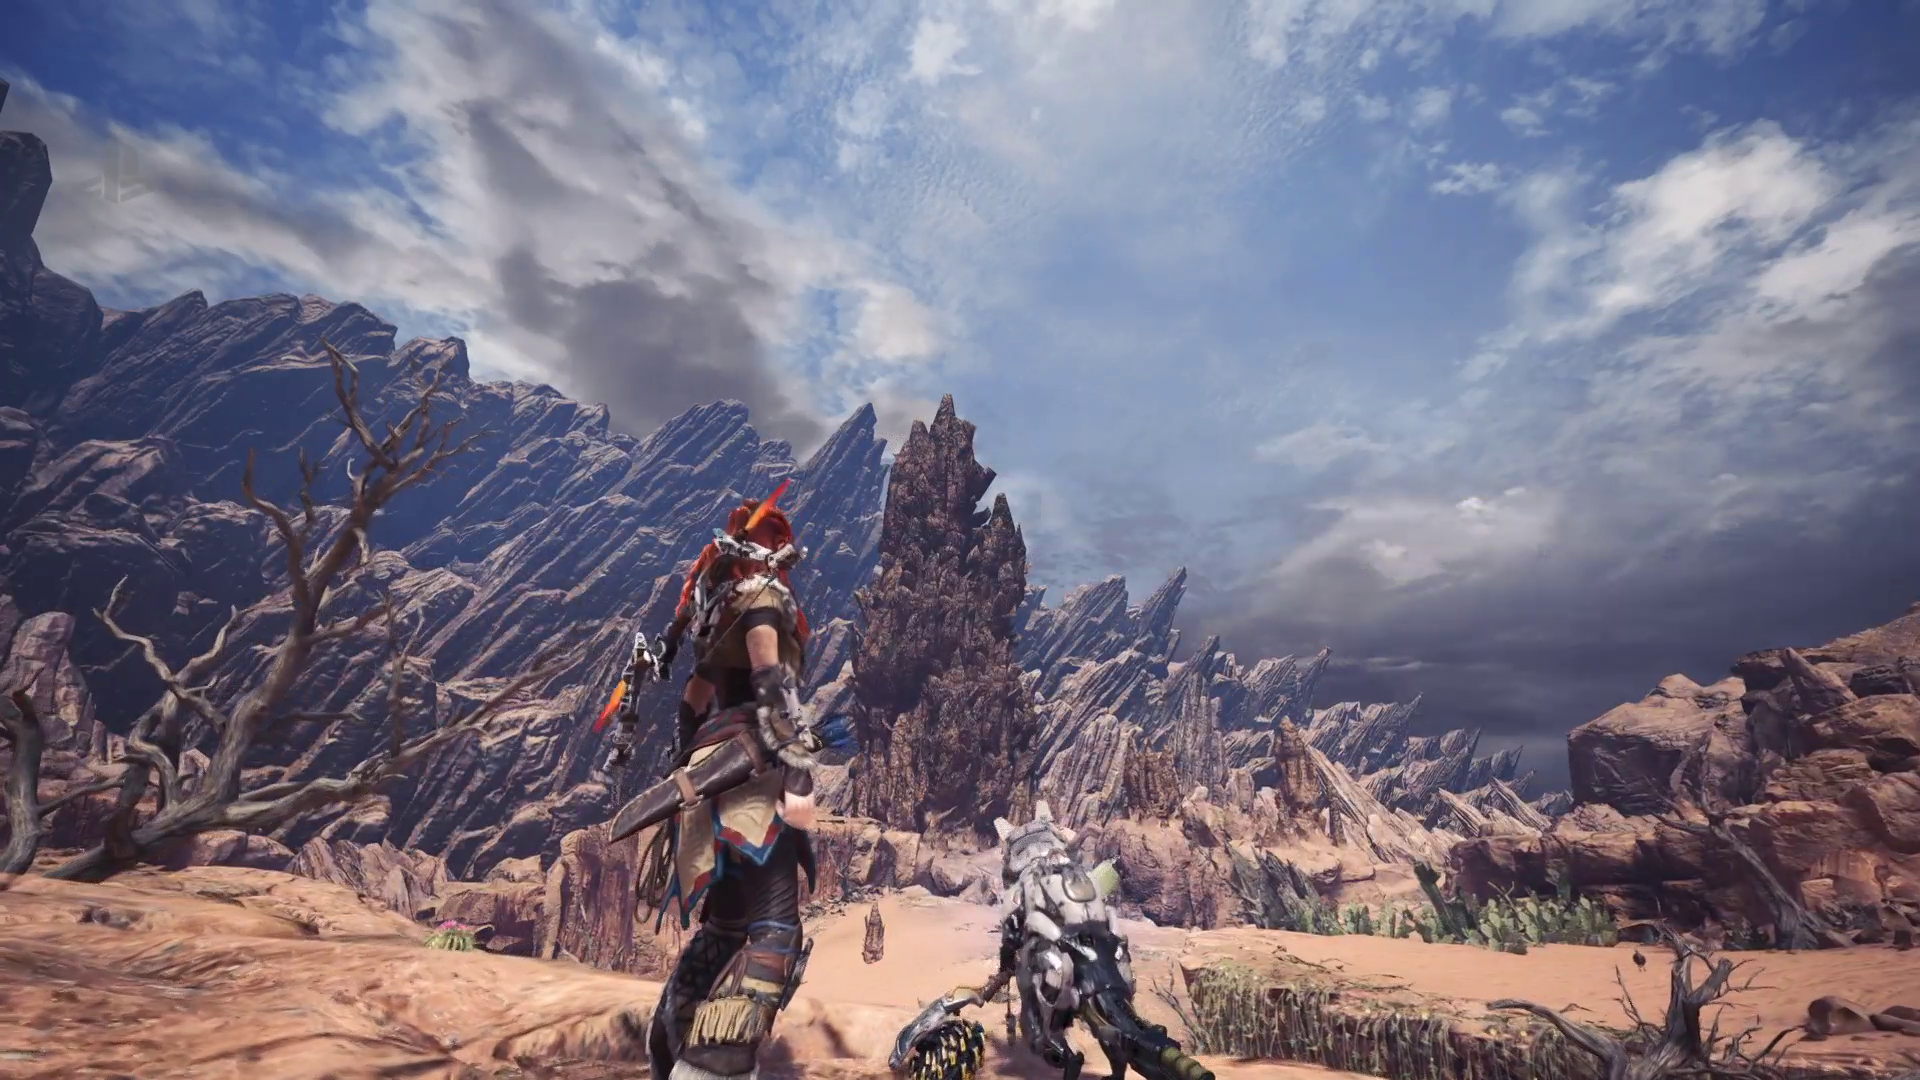 Monster Hunter: World has a free trial for the next week